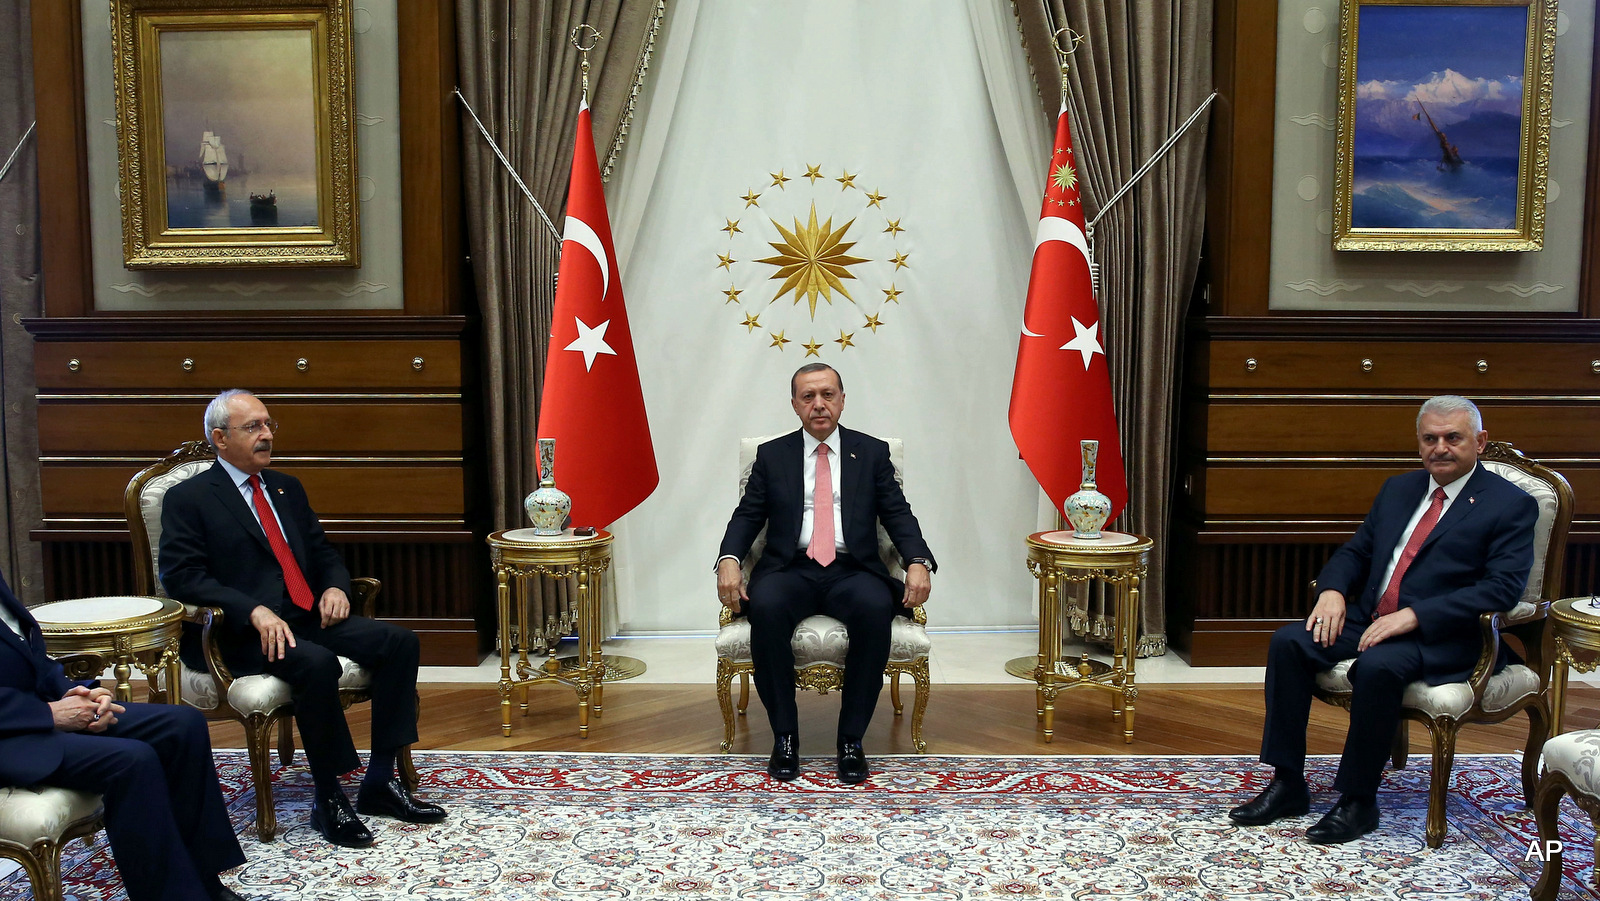 Turkey's President Recep Tayyip Erdogan, centre, Republican People's Party leader Kemal Kilicdaroglu, second left, National Movement Party leader Devlet Bahceli, left and Prime Minister Binali Yildirim look on at the start of their meeting in Ankara, Turkey, Monday, July 25, 2016.